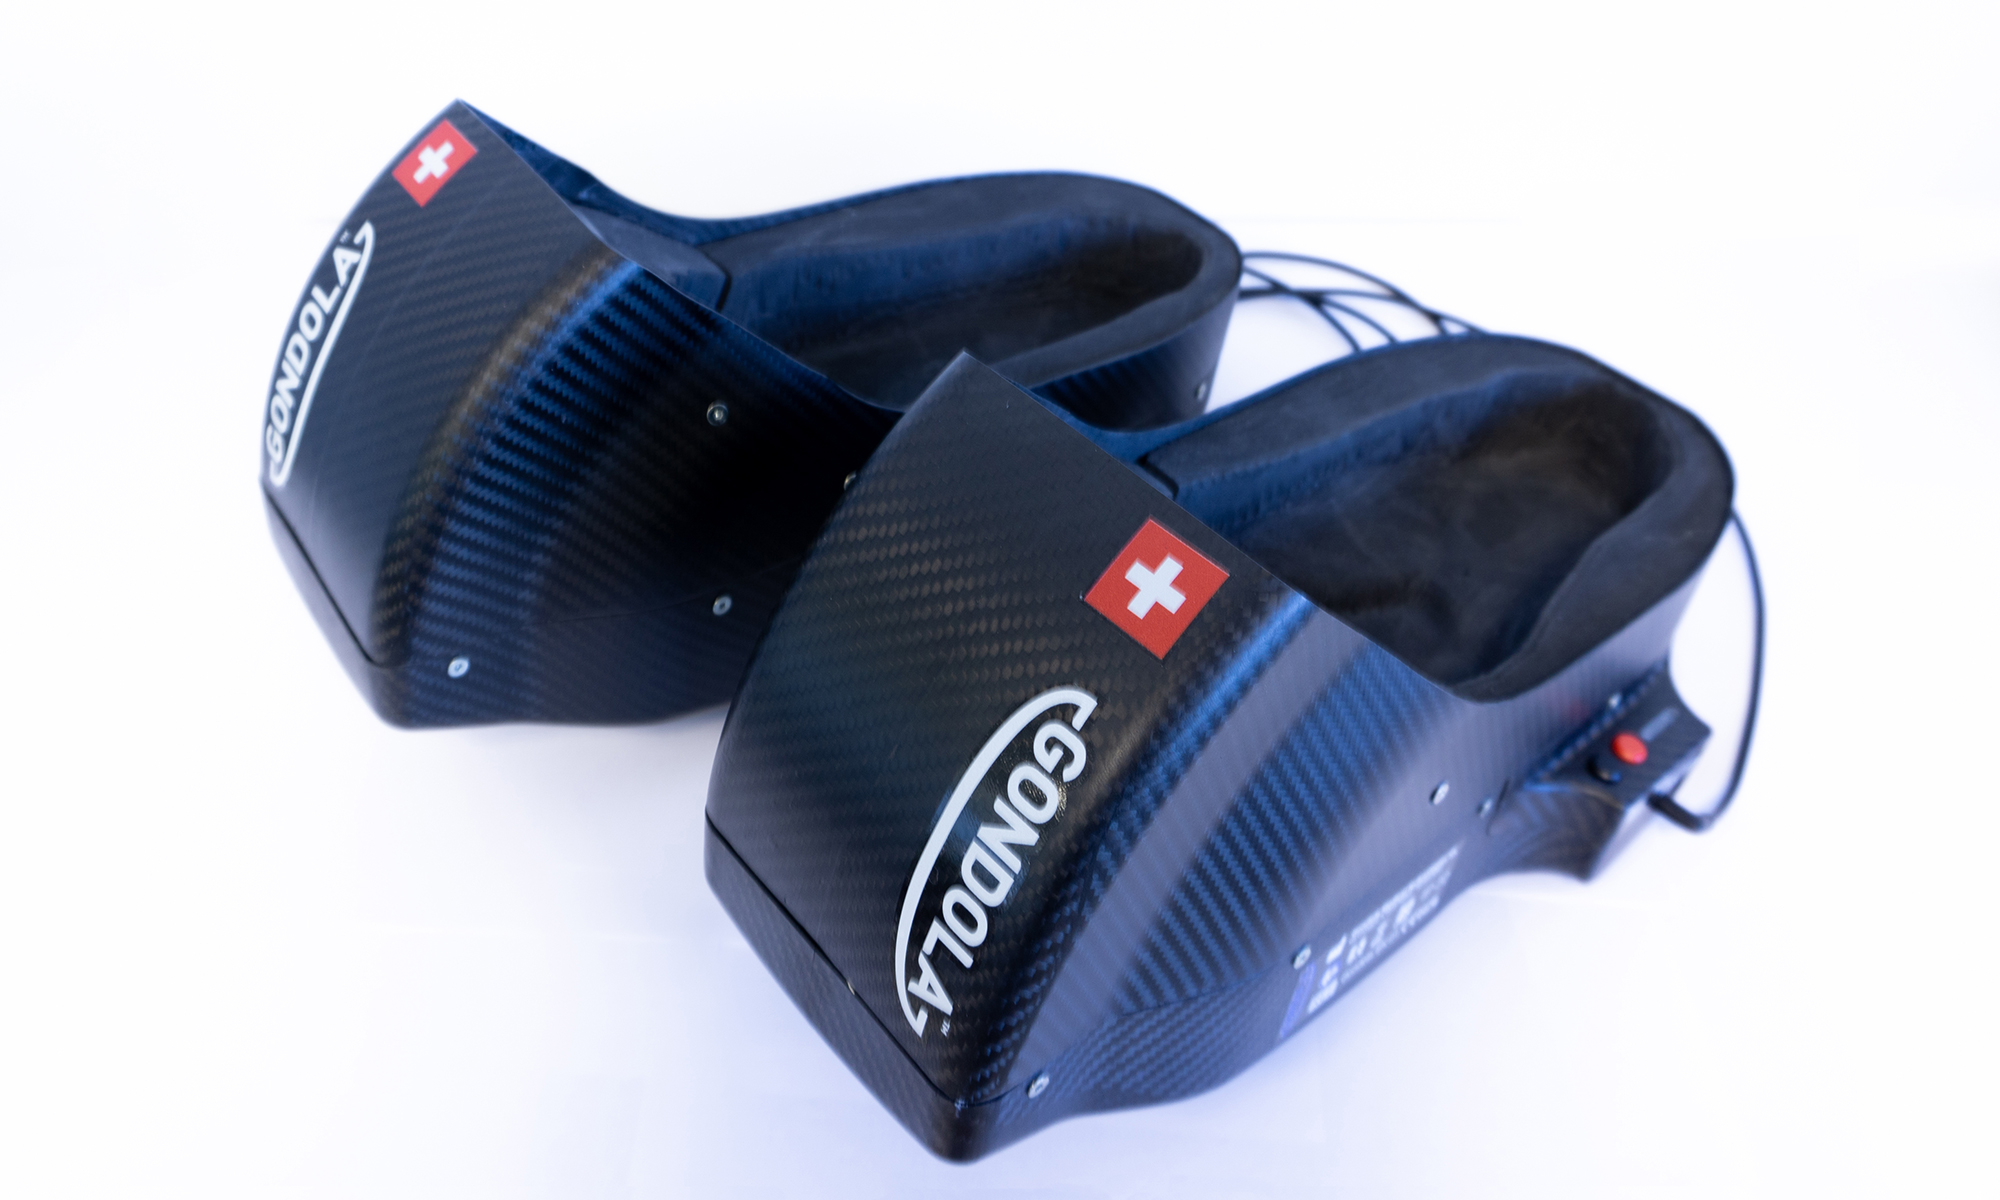 A portable device that stimulates two areas of the foot could help prevent freezing of gait episodes. Image credit: Gondola MedTech SA